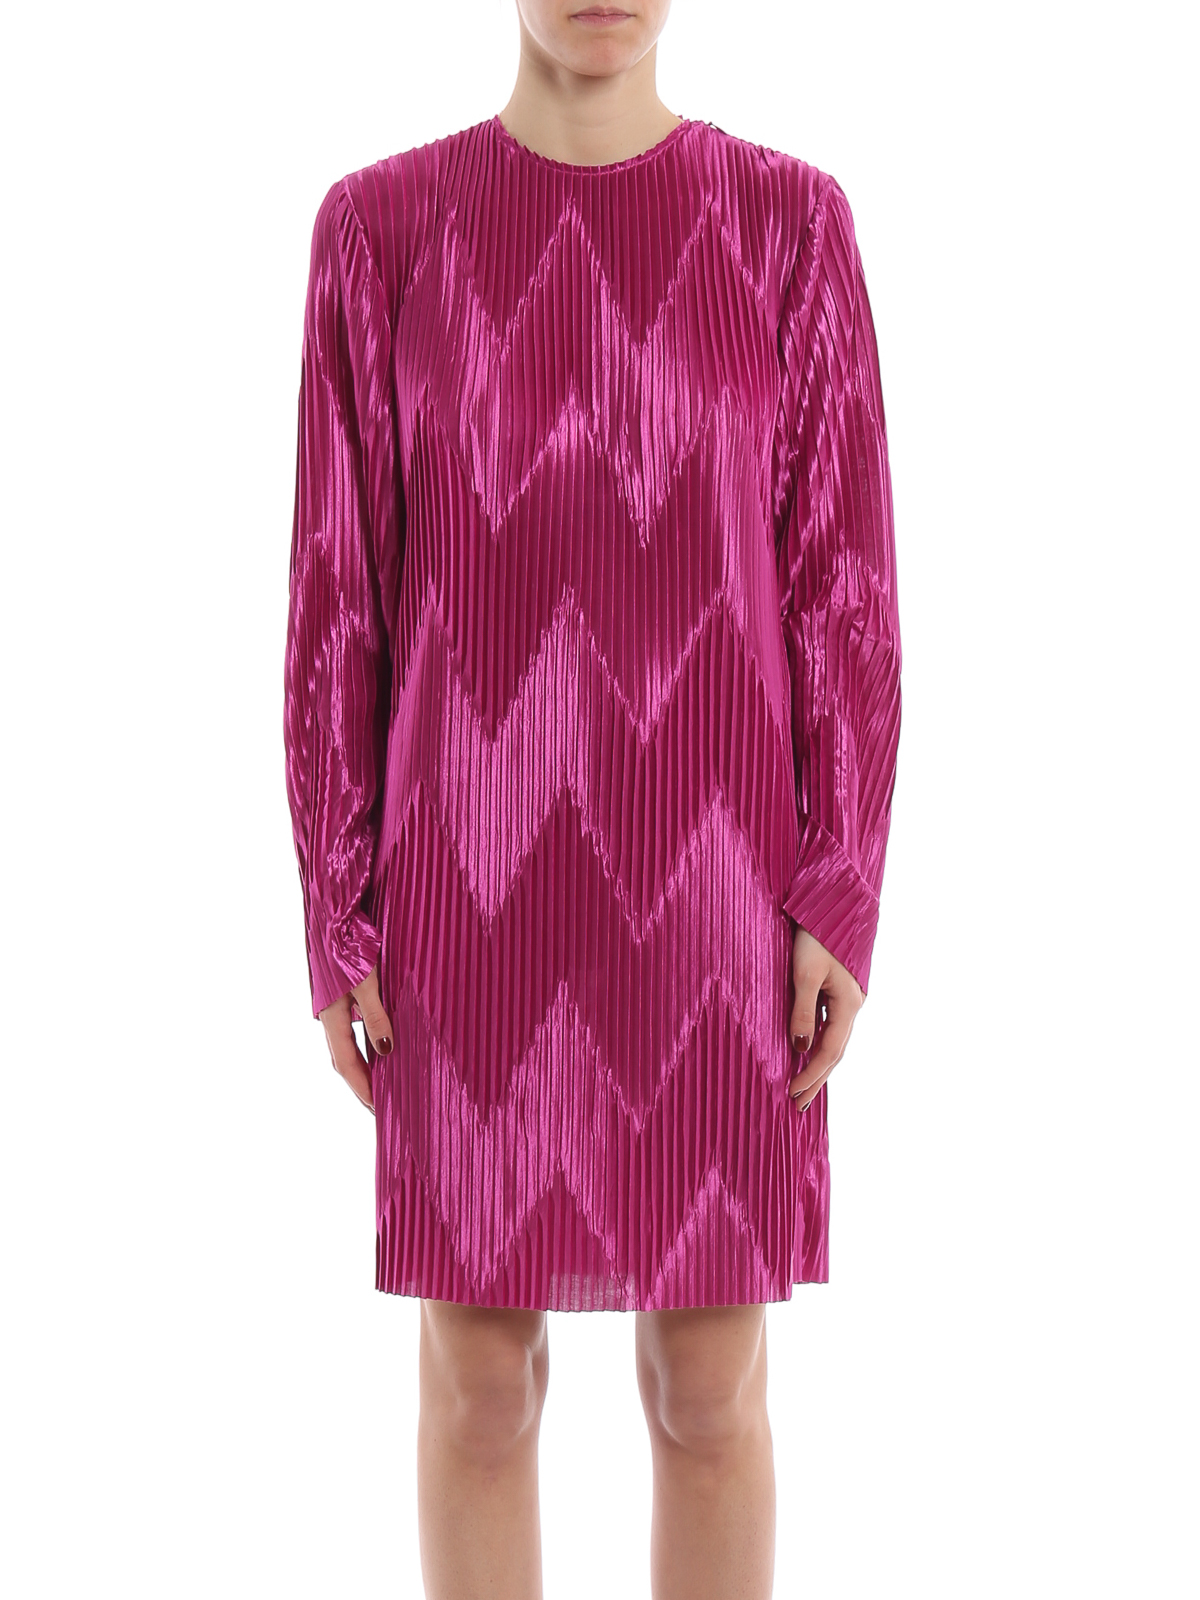 iKRIX GIVENCHY  cocktail dresses - Orchid purple chevron pleated jersey  dress 8b809e7453a5c